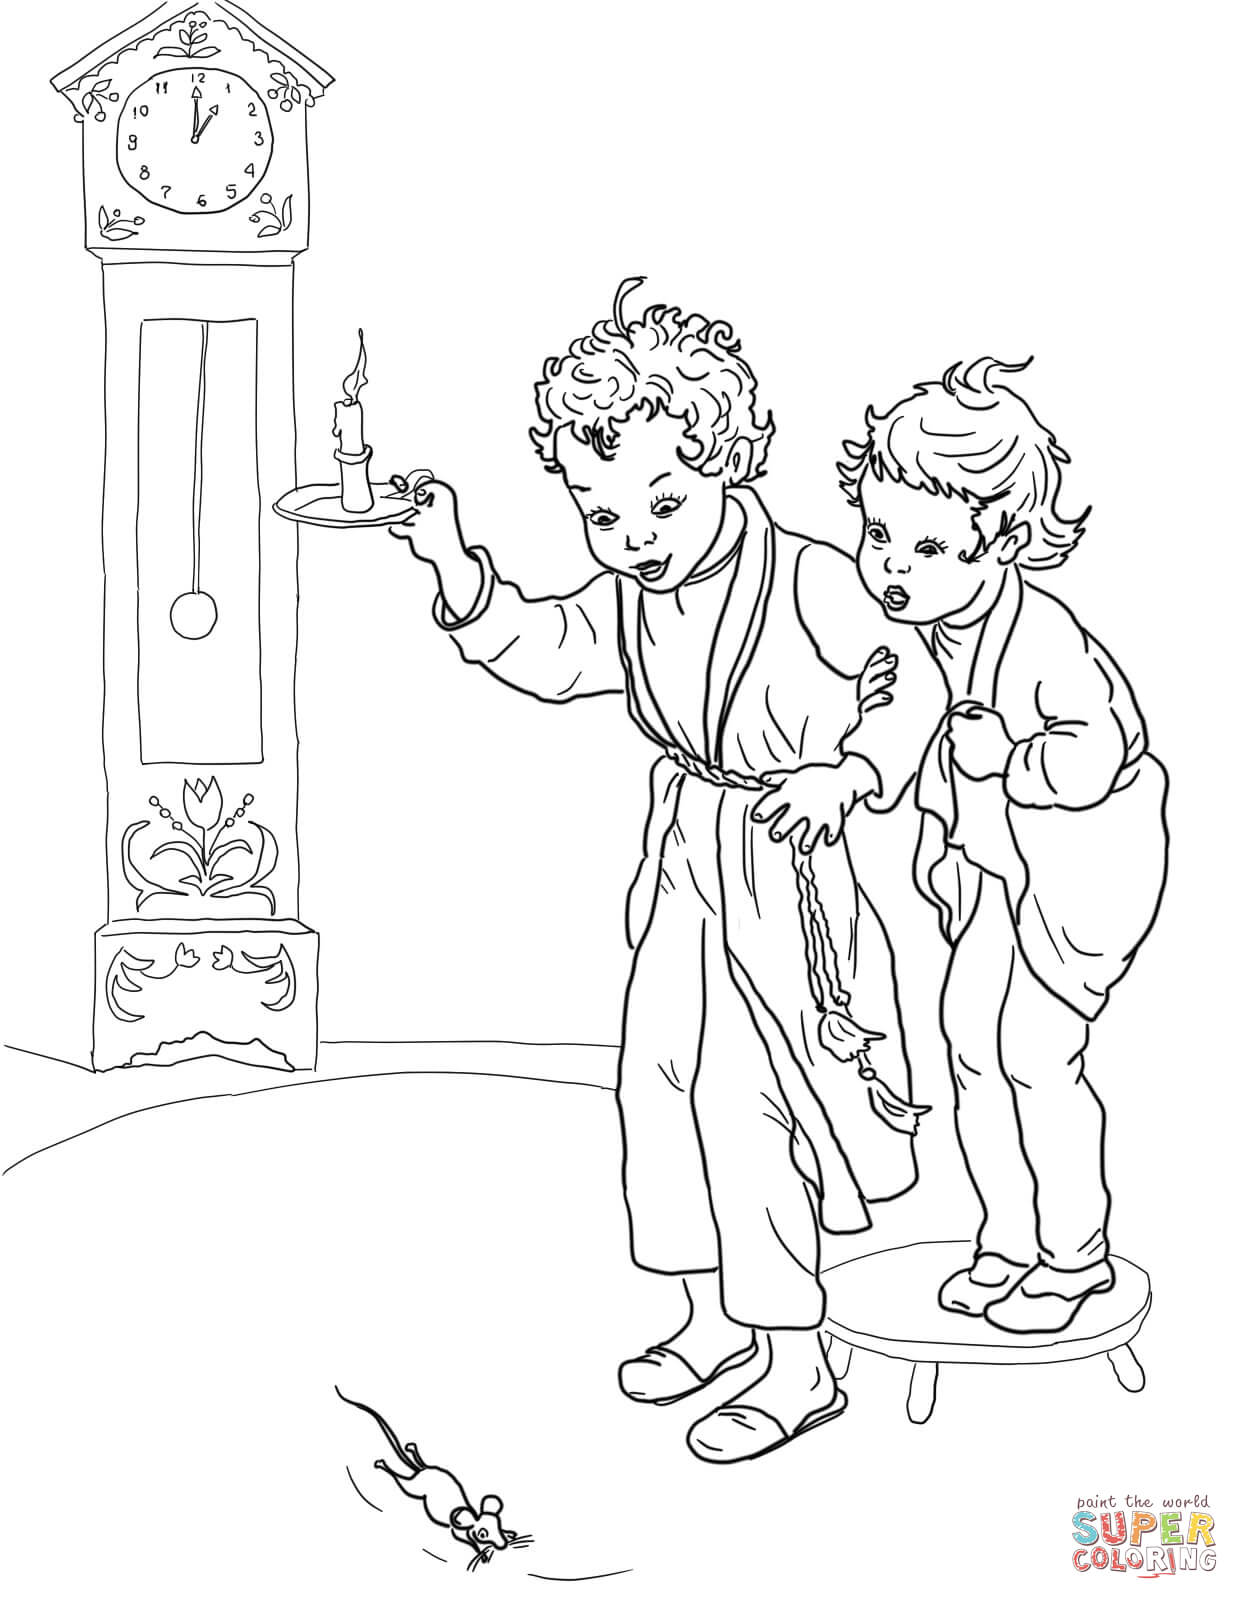 Hickory Dickory Dock Coloring Page